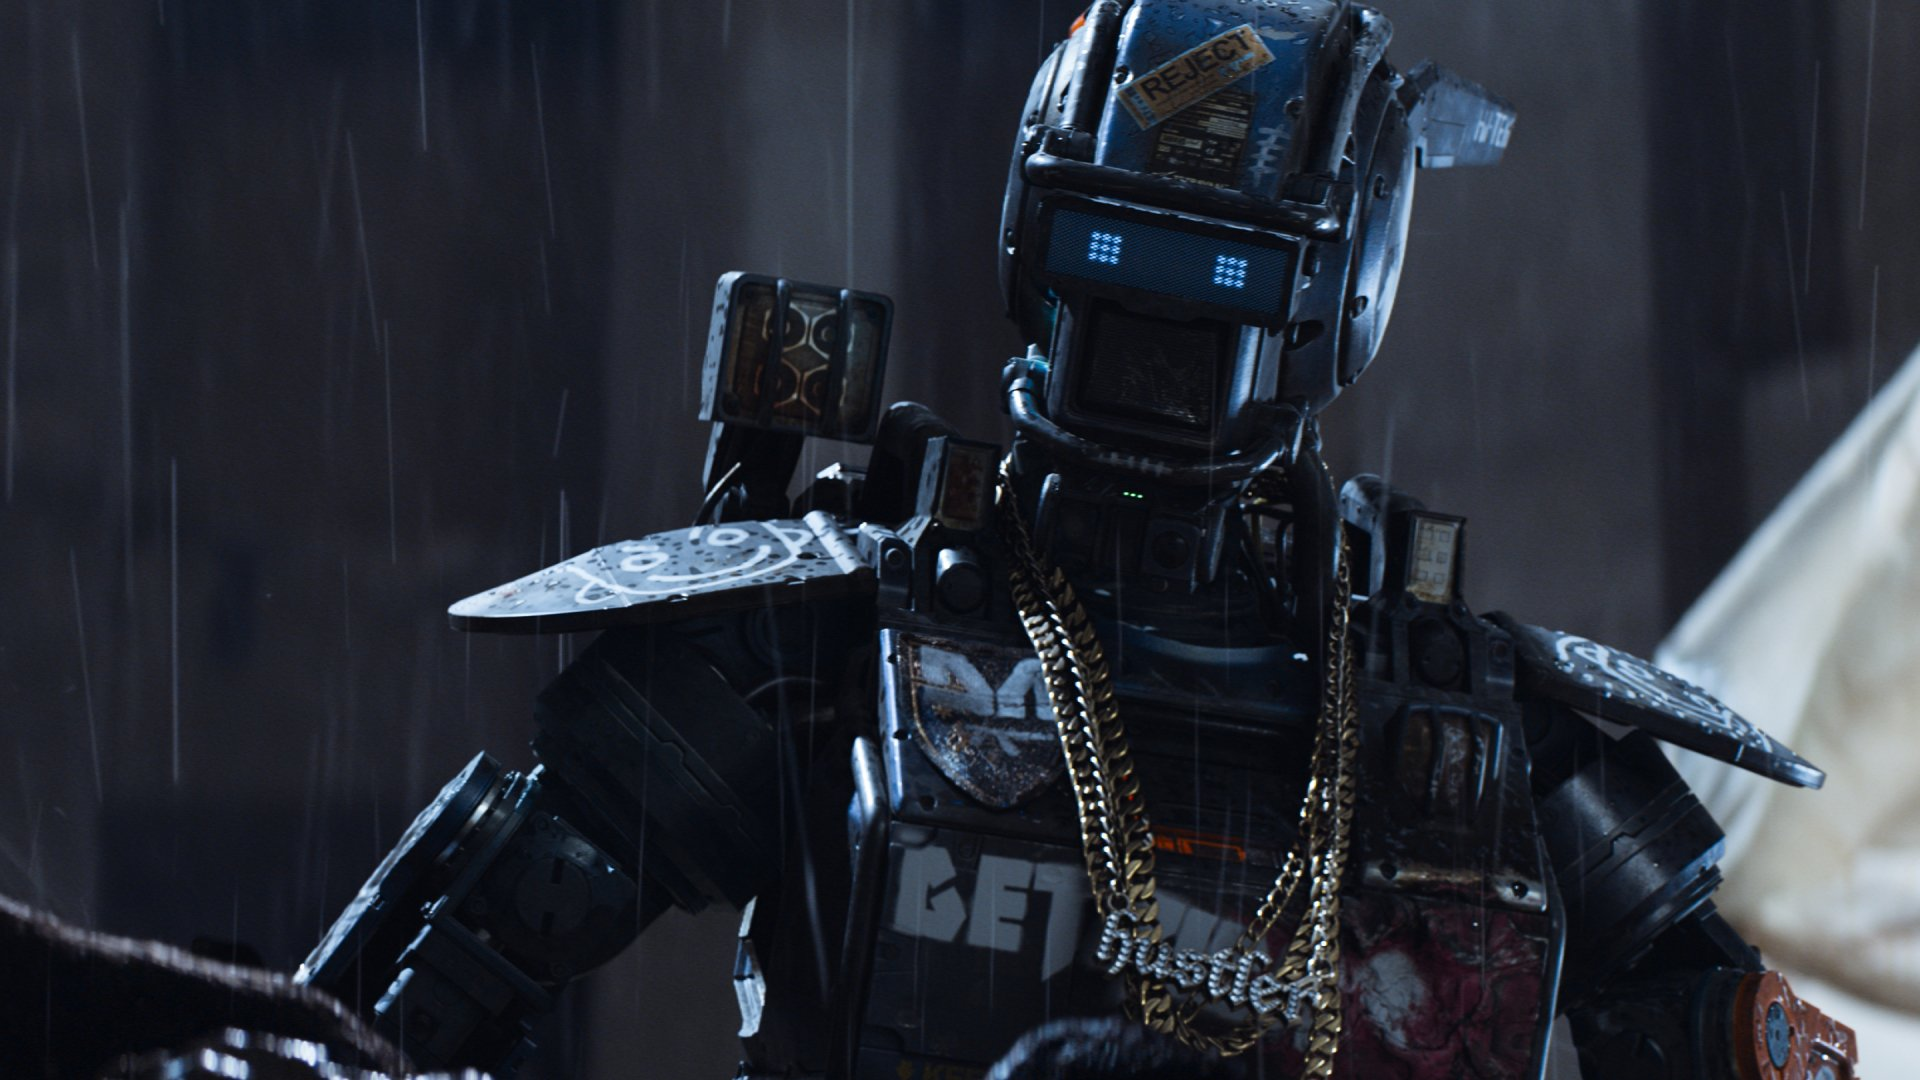 Chappie hd wallpaper background image 2880x1620 id 598553 wallpaper abyss - 2880x1620 wallpaper ...